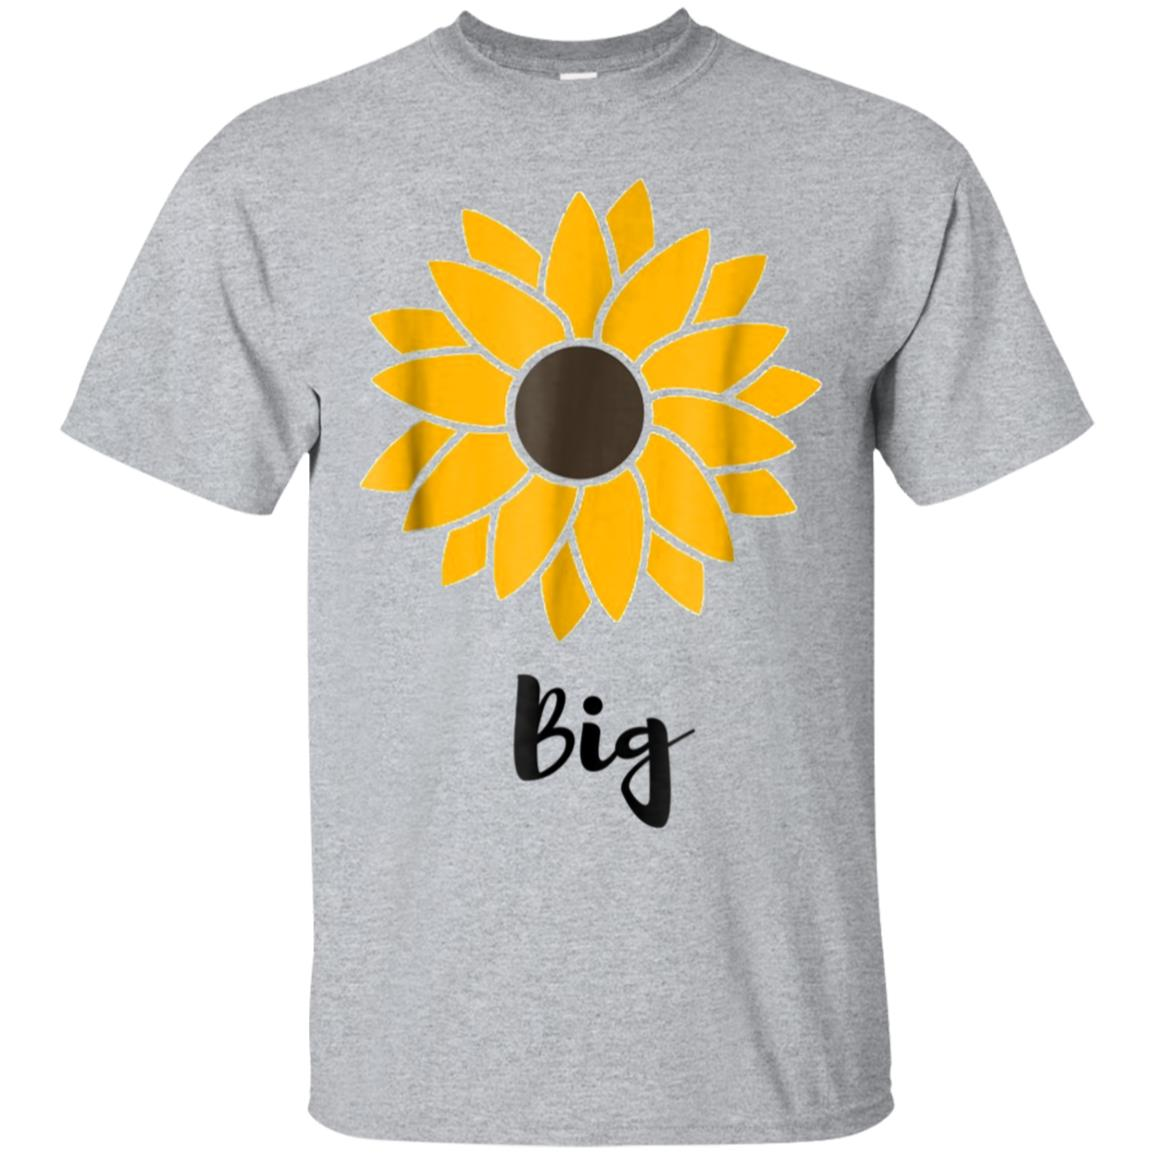 Sun flower Big sister sorority tee 99promocode